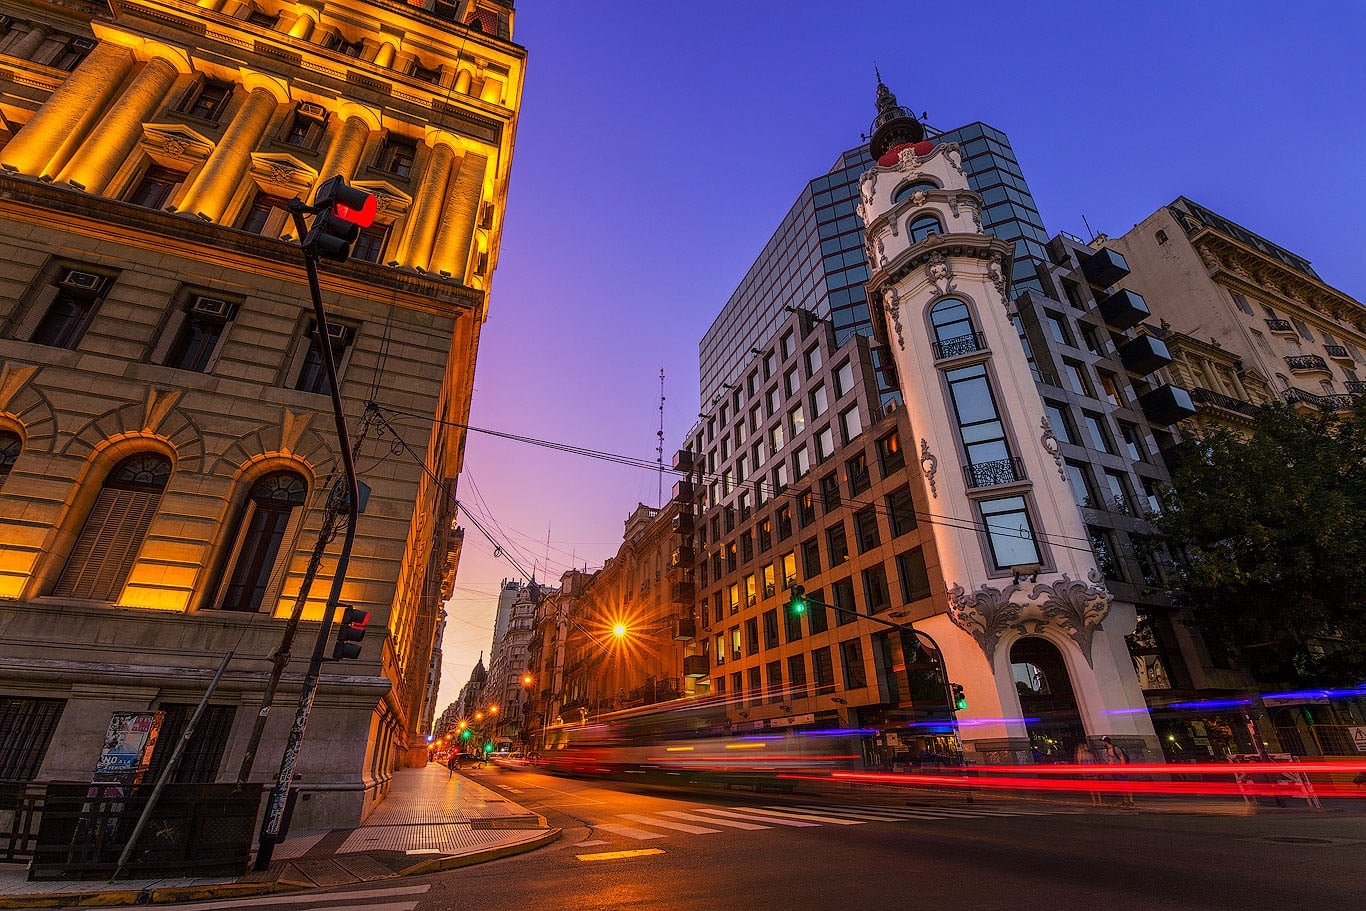 Mirador Massue & Palace of Justice at twilight, Buenos Aires